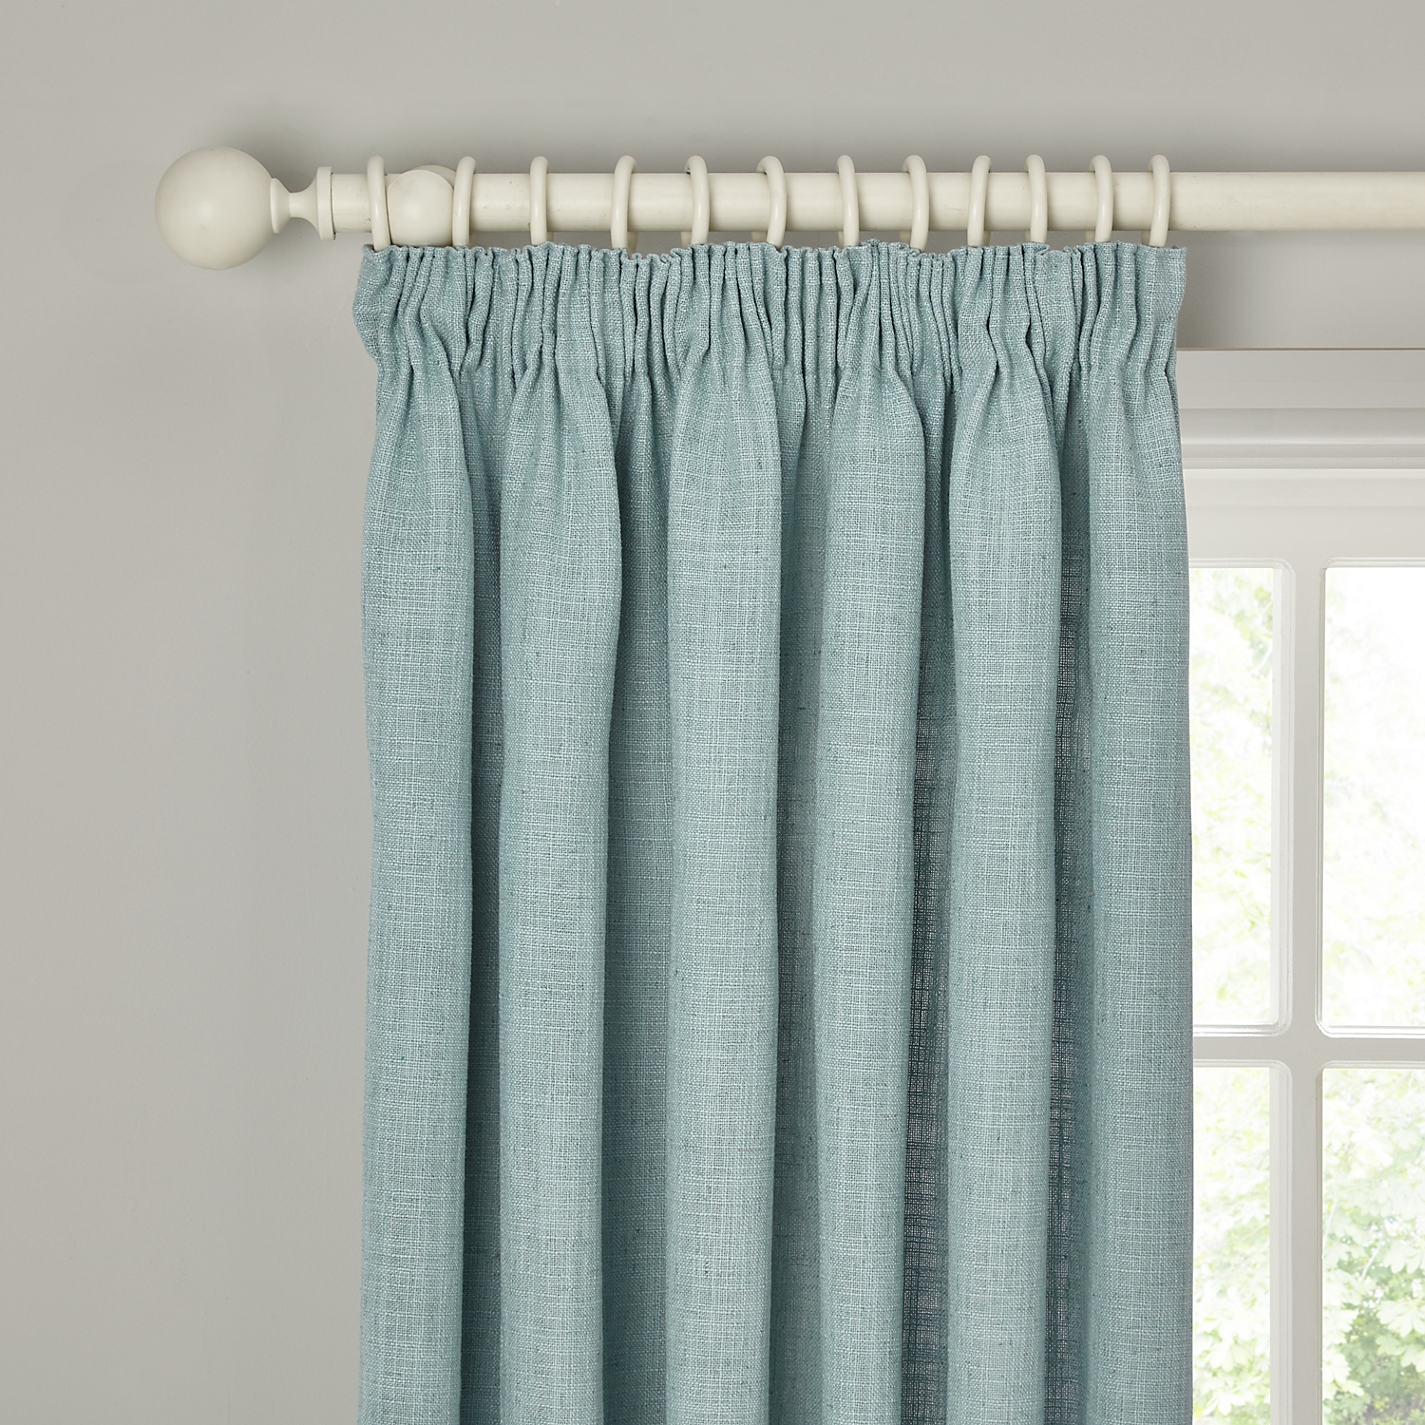 Pencil Pleat Curtains Buying Guides Egovjournal Home Pertaining To Pencil Pleat Curtains (View 3 of 15)